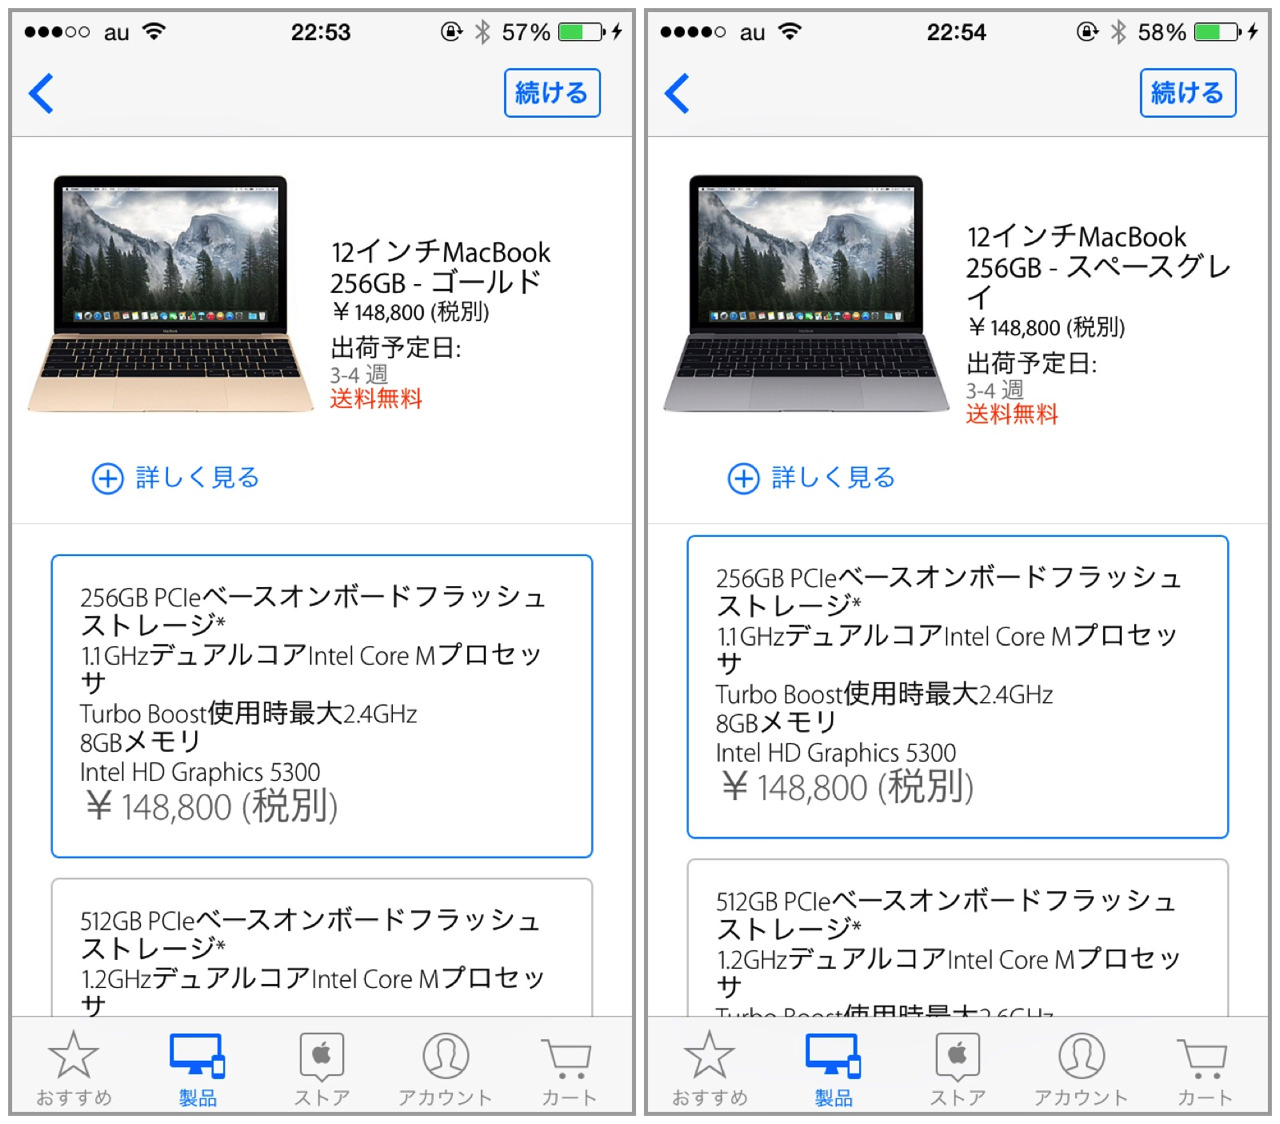 Shipment date of macbook early 201501